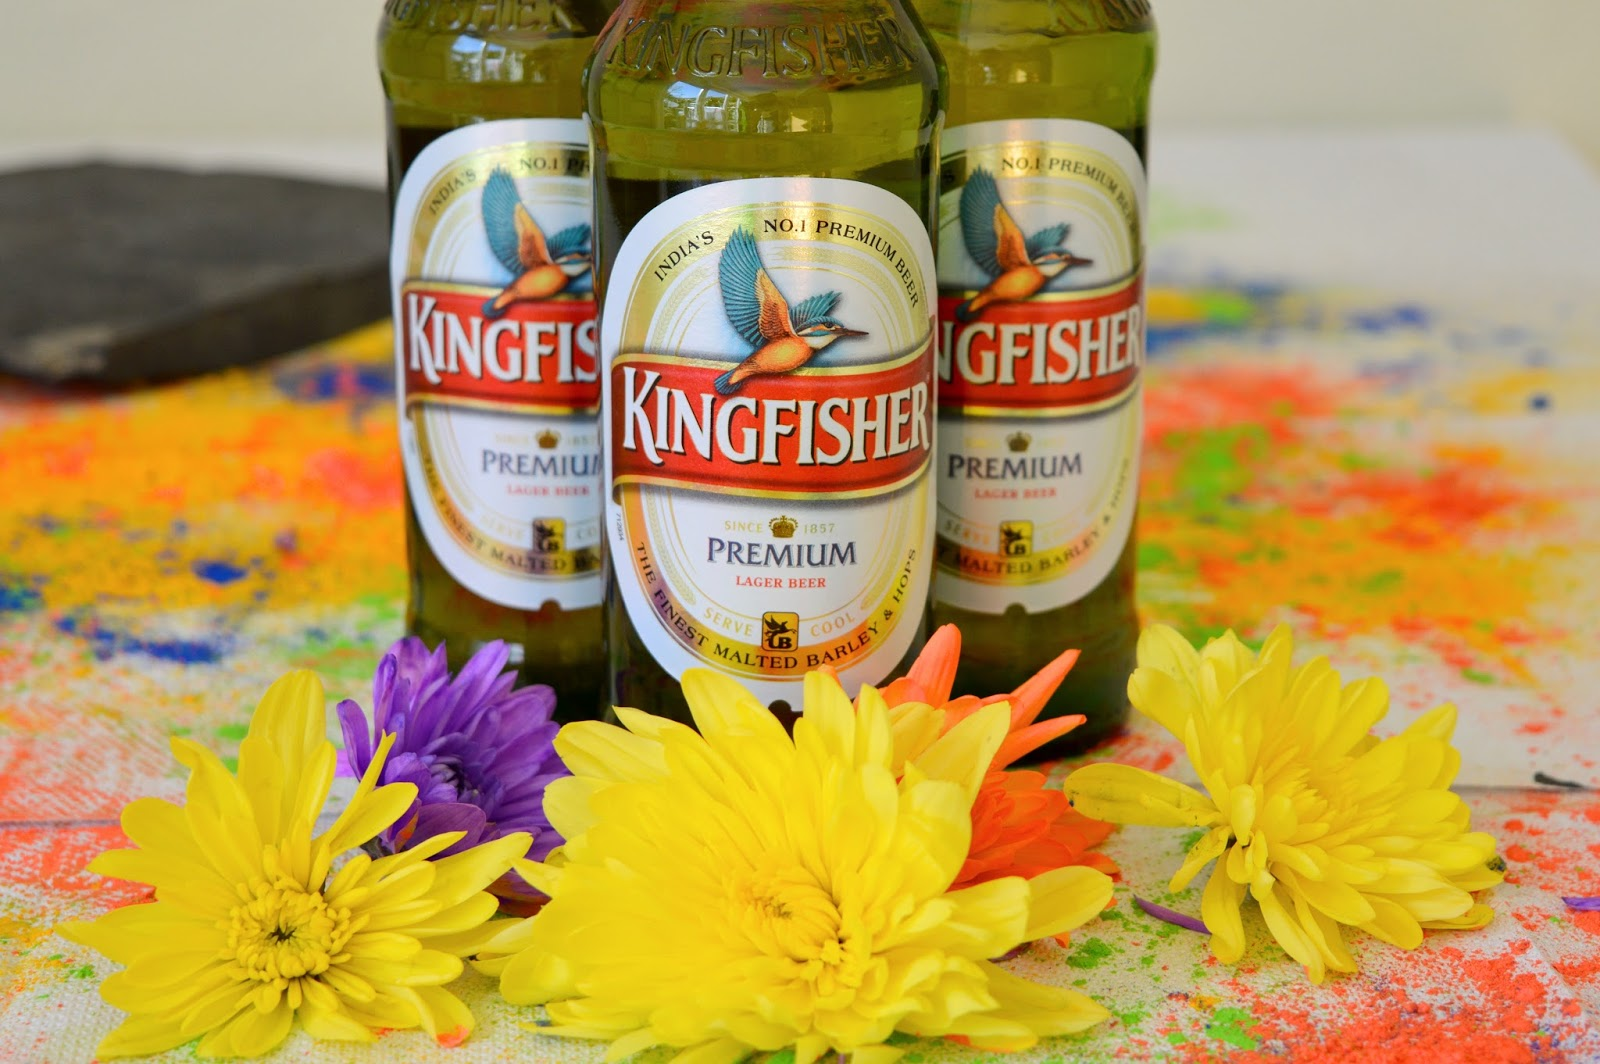 Kingfisher beer, Holi festival recipes, food bloggers, food blog